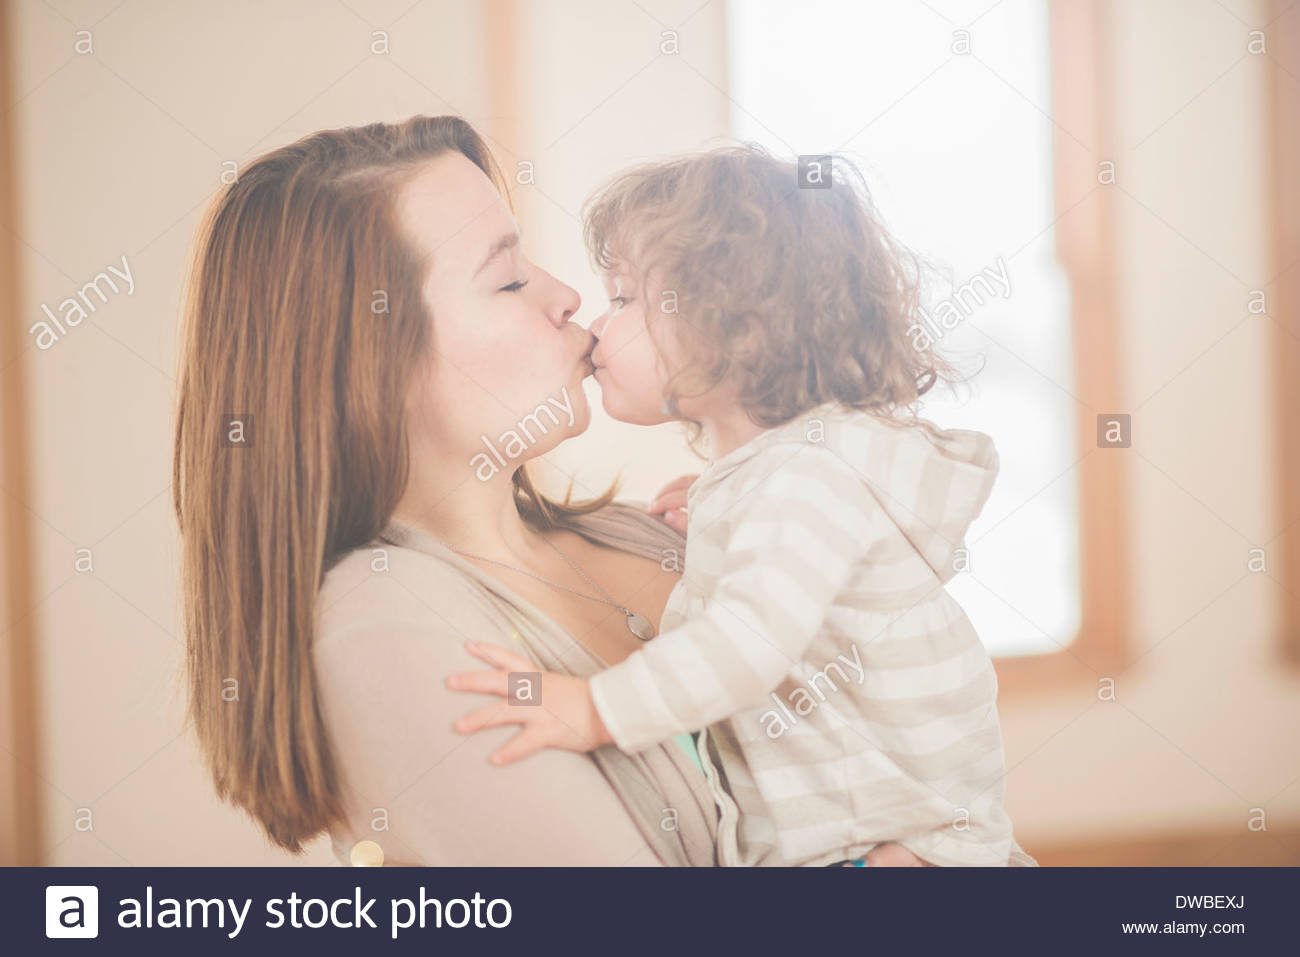 Female toddler and adoring teenage aunt - Stock Image